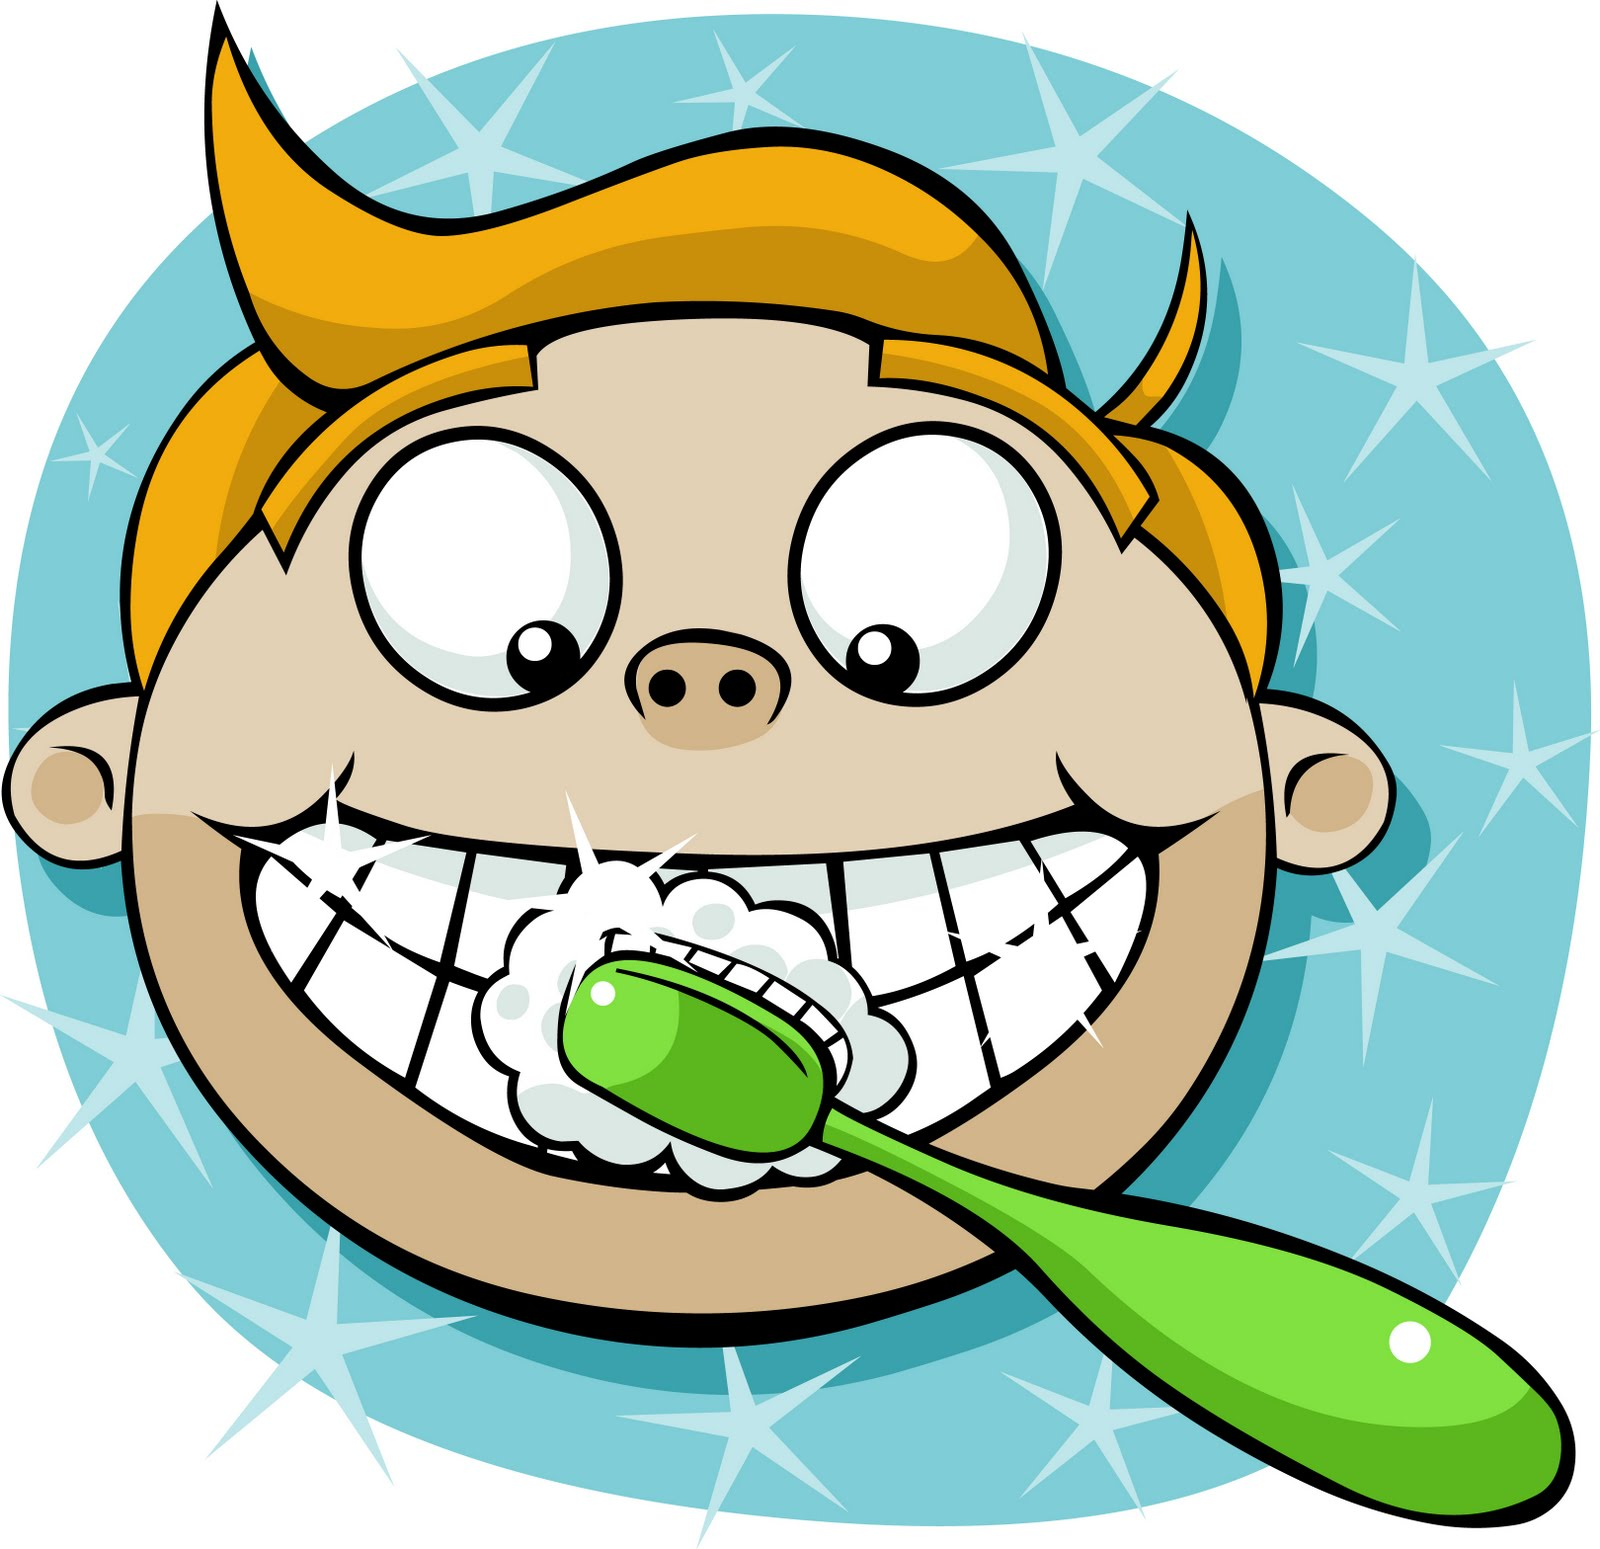 Help Your Mouth: The Best Brushing Tip Ever